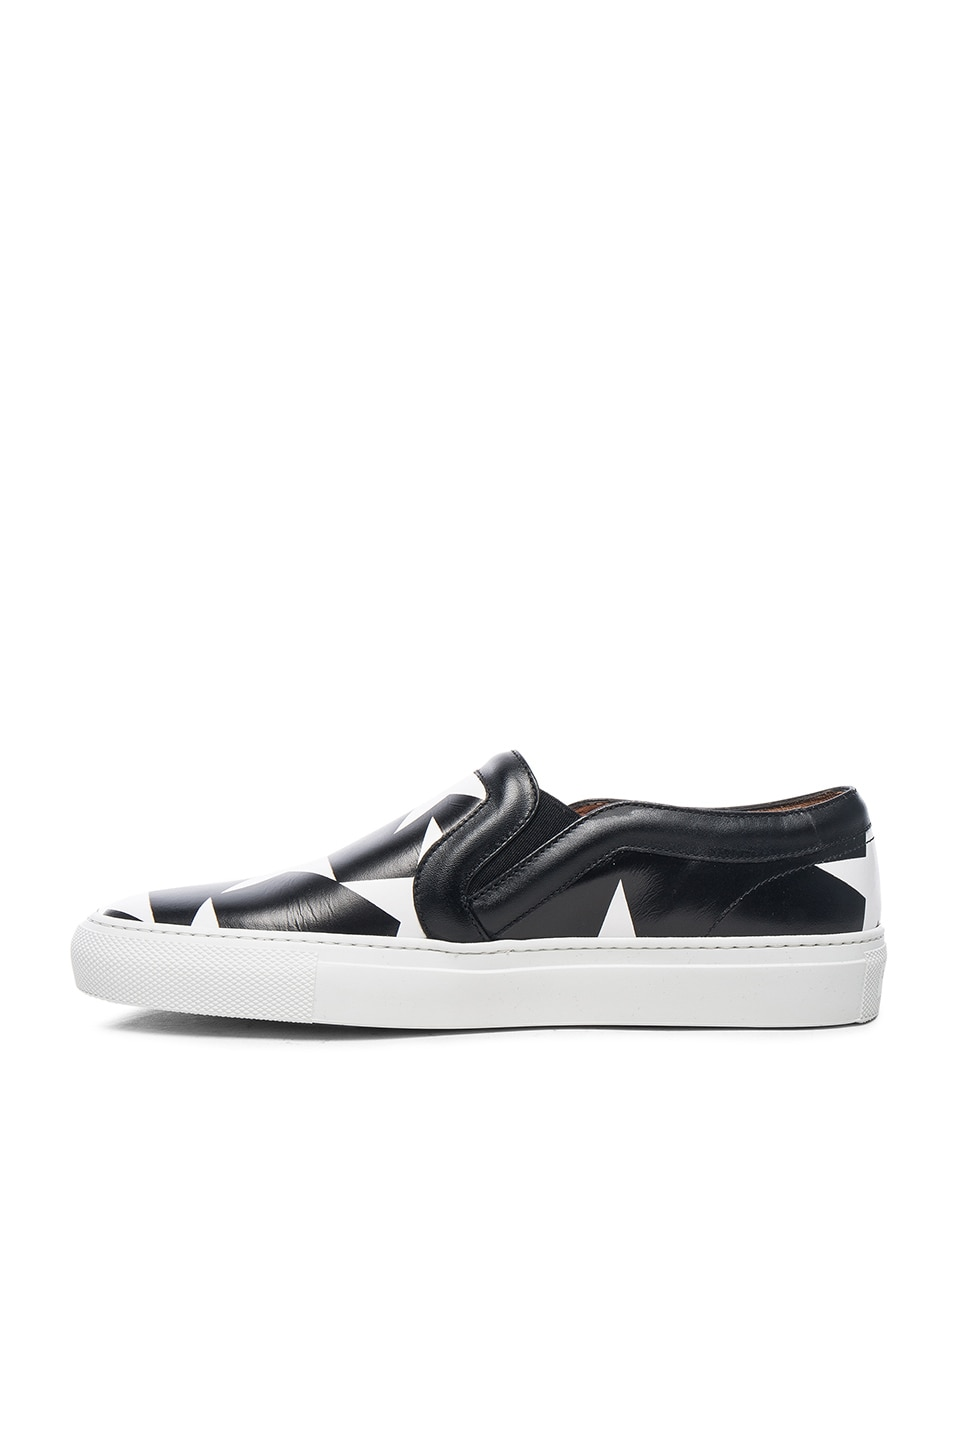 Image 5 of Givenchy Star Print Skate Sneakers in Black & White